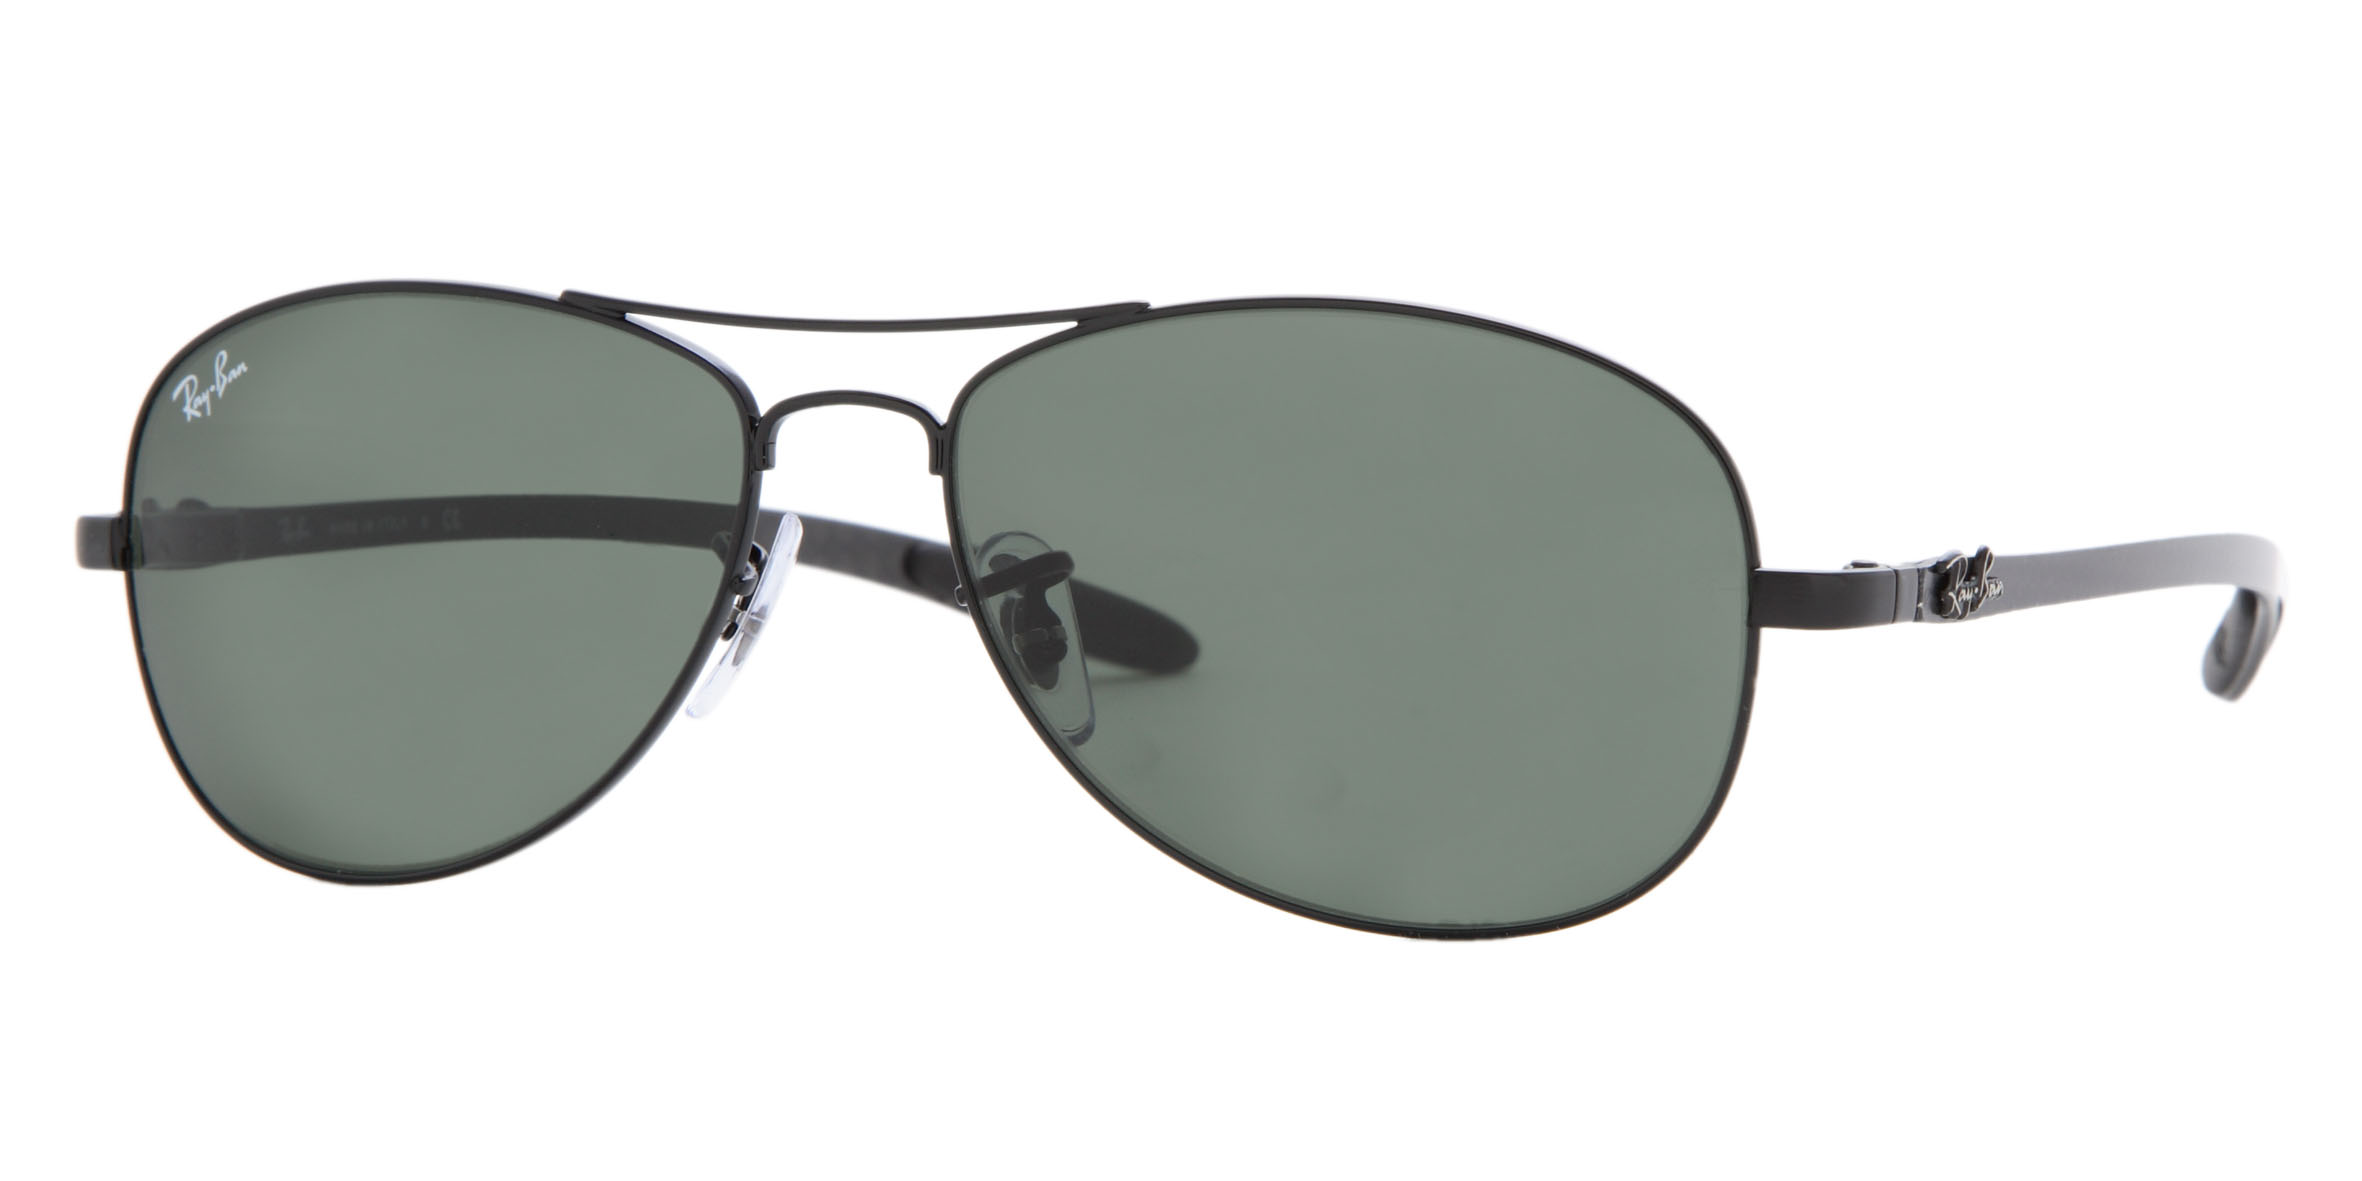 lenscrafters ray ban frames sunglasses  lenscrafters semi annual sale is almost over! and a rayban giveaway!